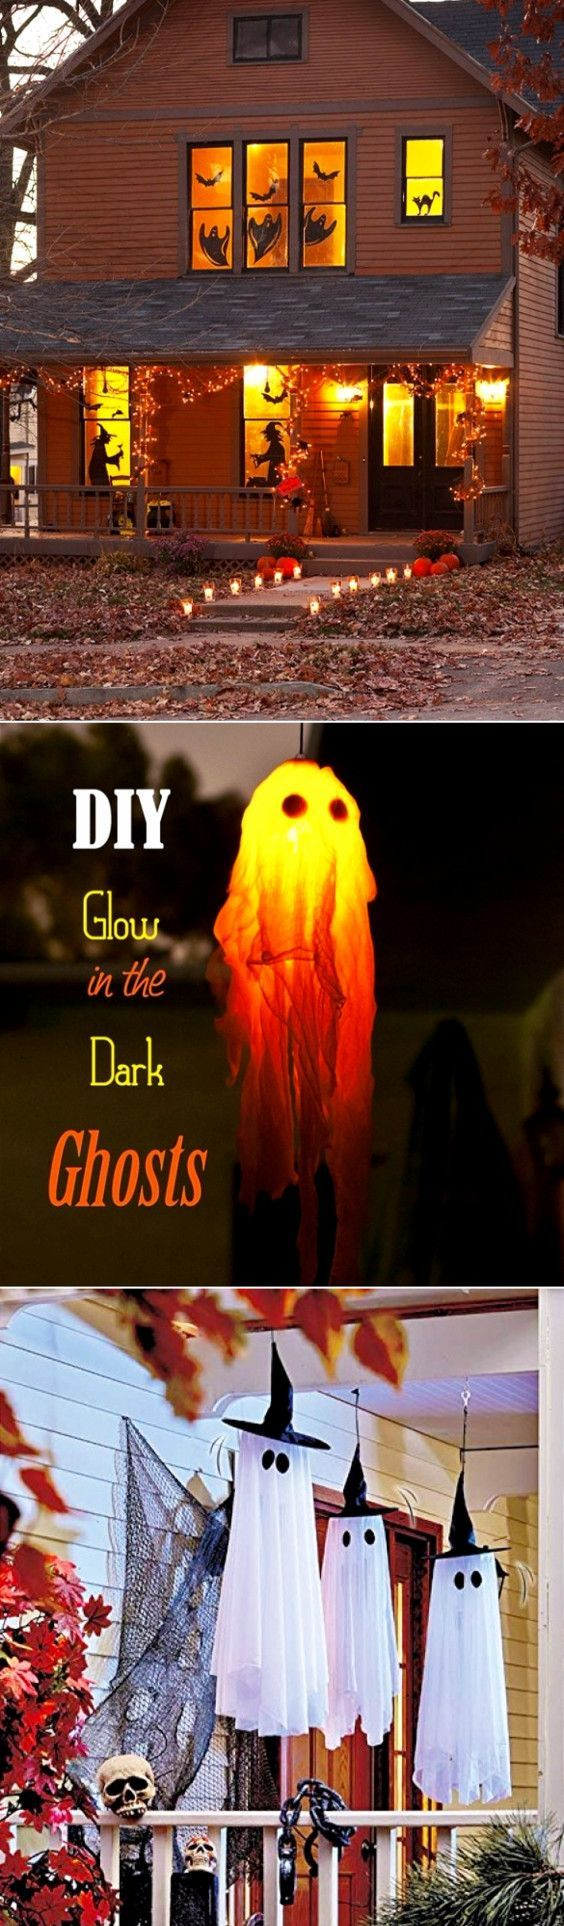 Homemade Halloween decorations • DIY outdoor Halloween decorations - scary yet fun and not too creepy #outdoorhalloweendecorations